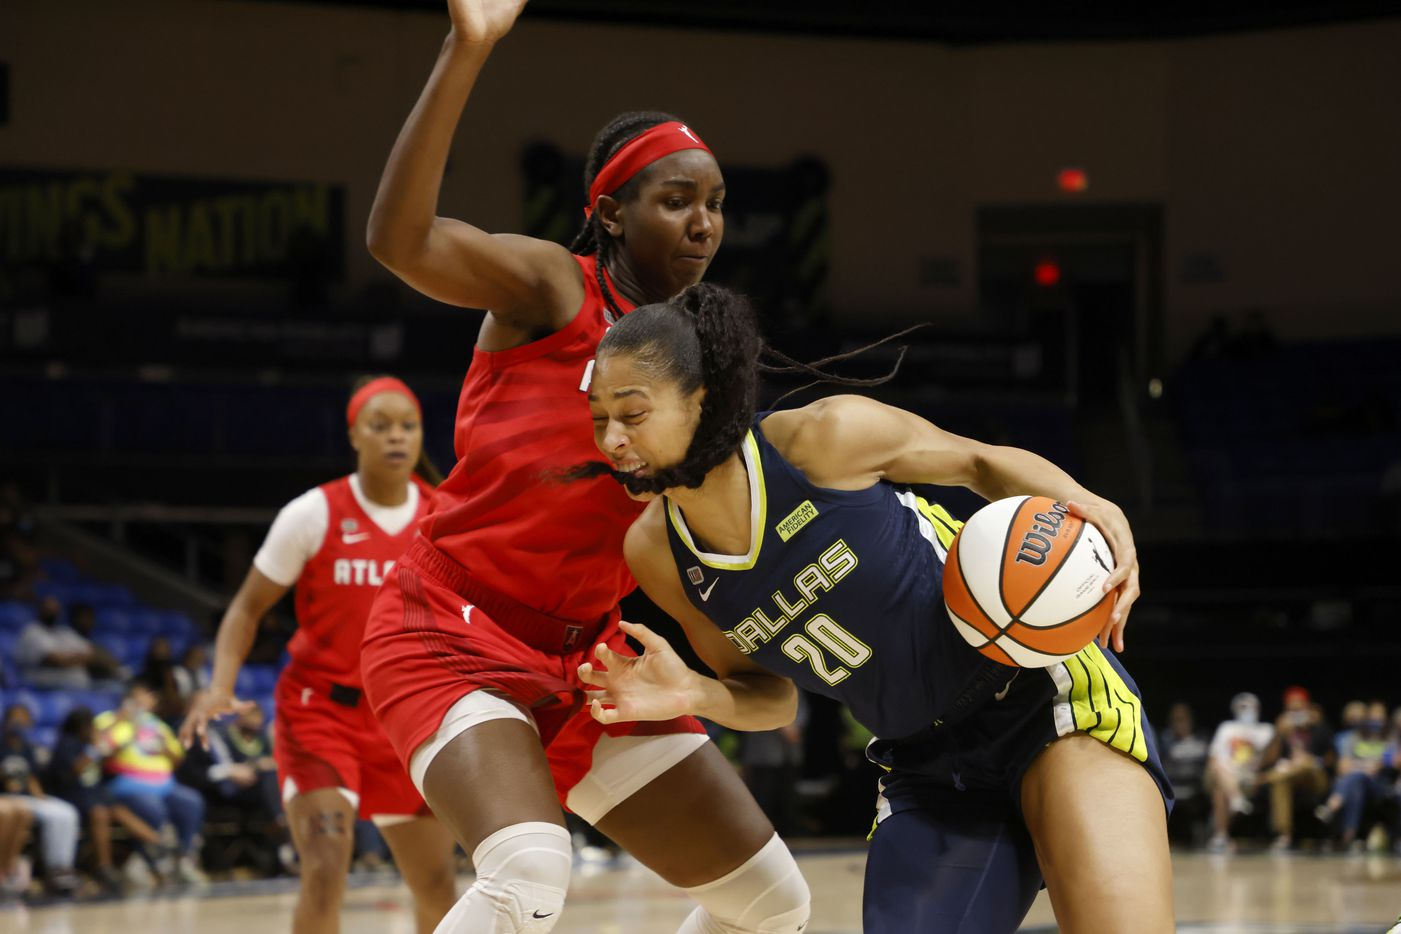 Dallas Wings forward Isabelle Harrison (20) tries to get past Atlanta Dream center/forward Elizabeth Williams, left during the first half of their WNBA basketball game in Arlington, Texas on Sept. 2, 2021. (Michael Ainsworth/Special Contributor)